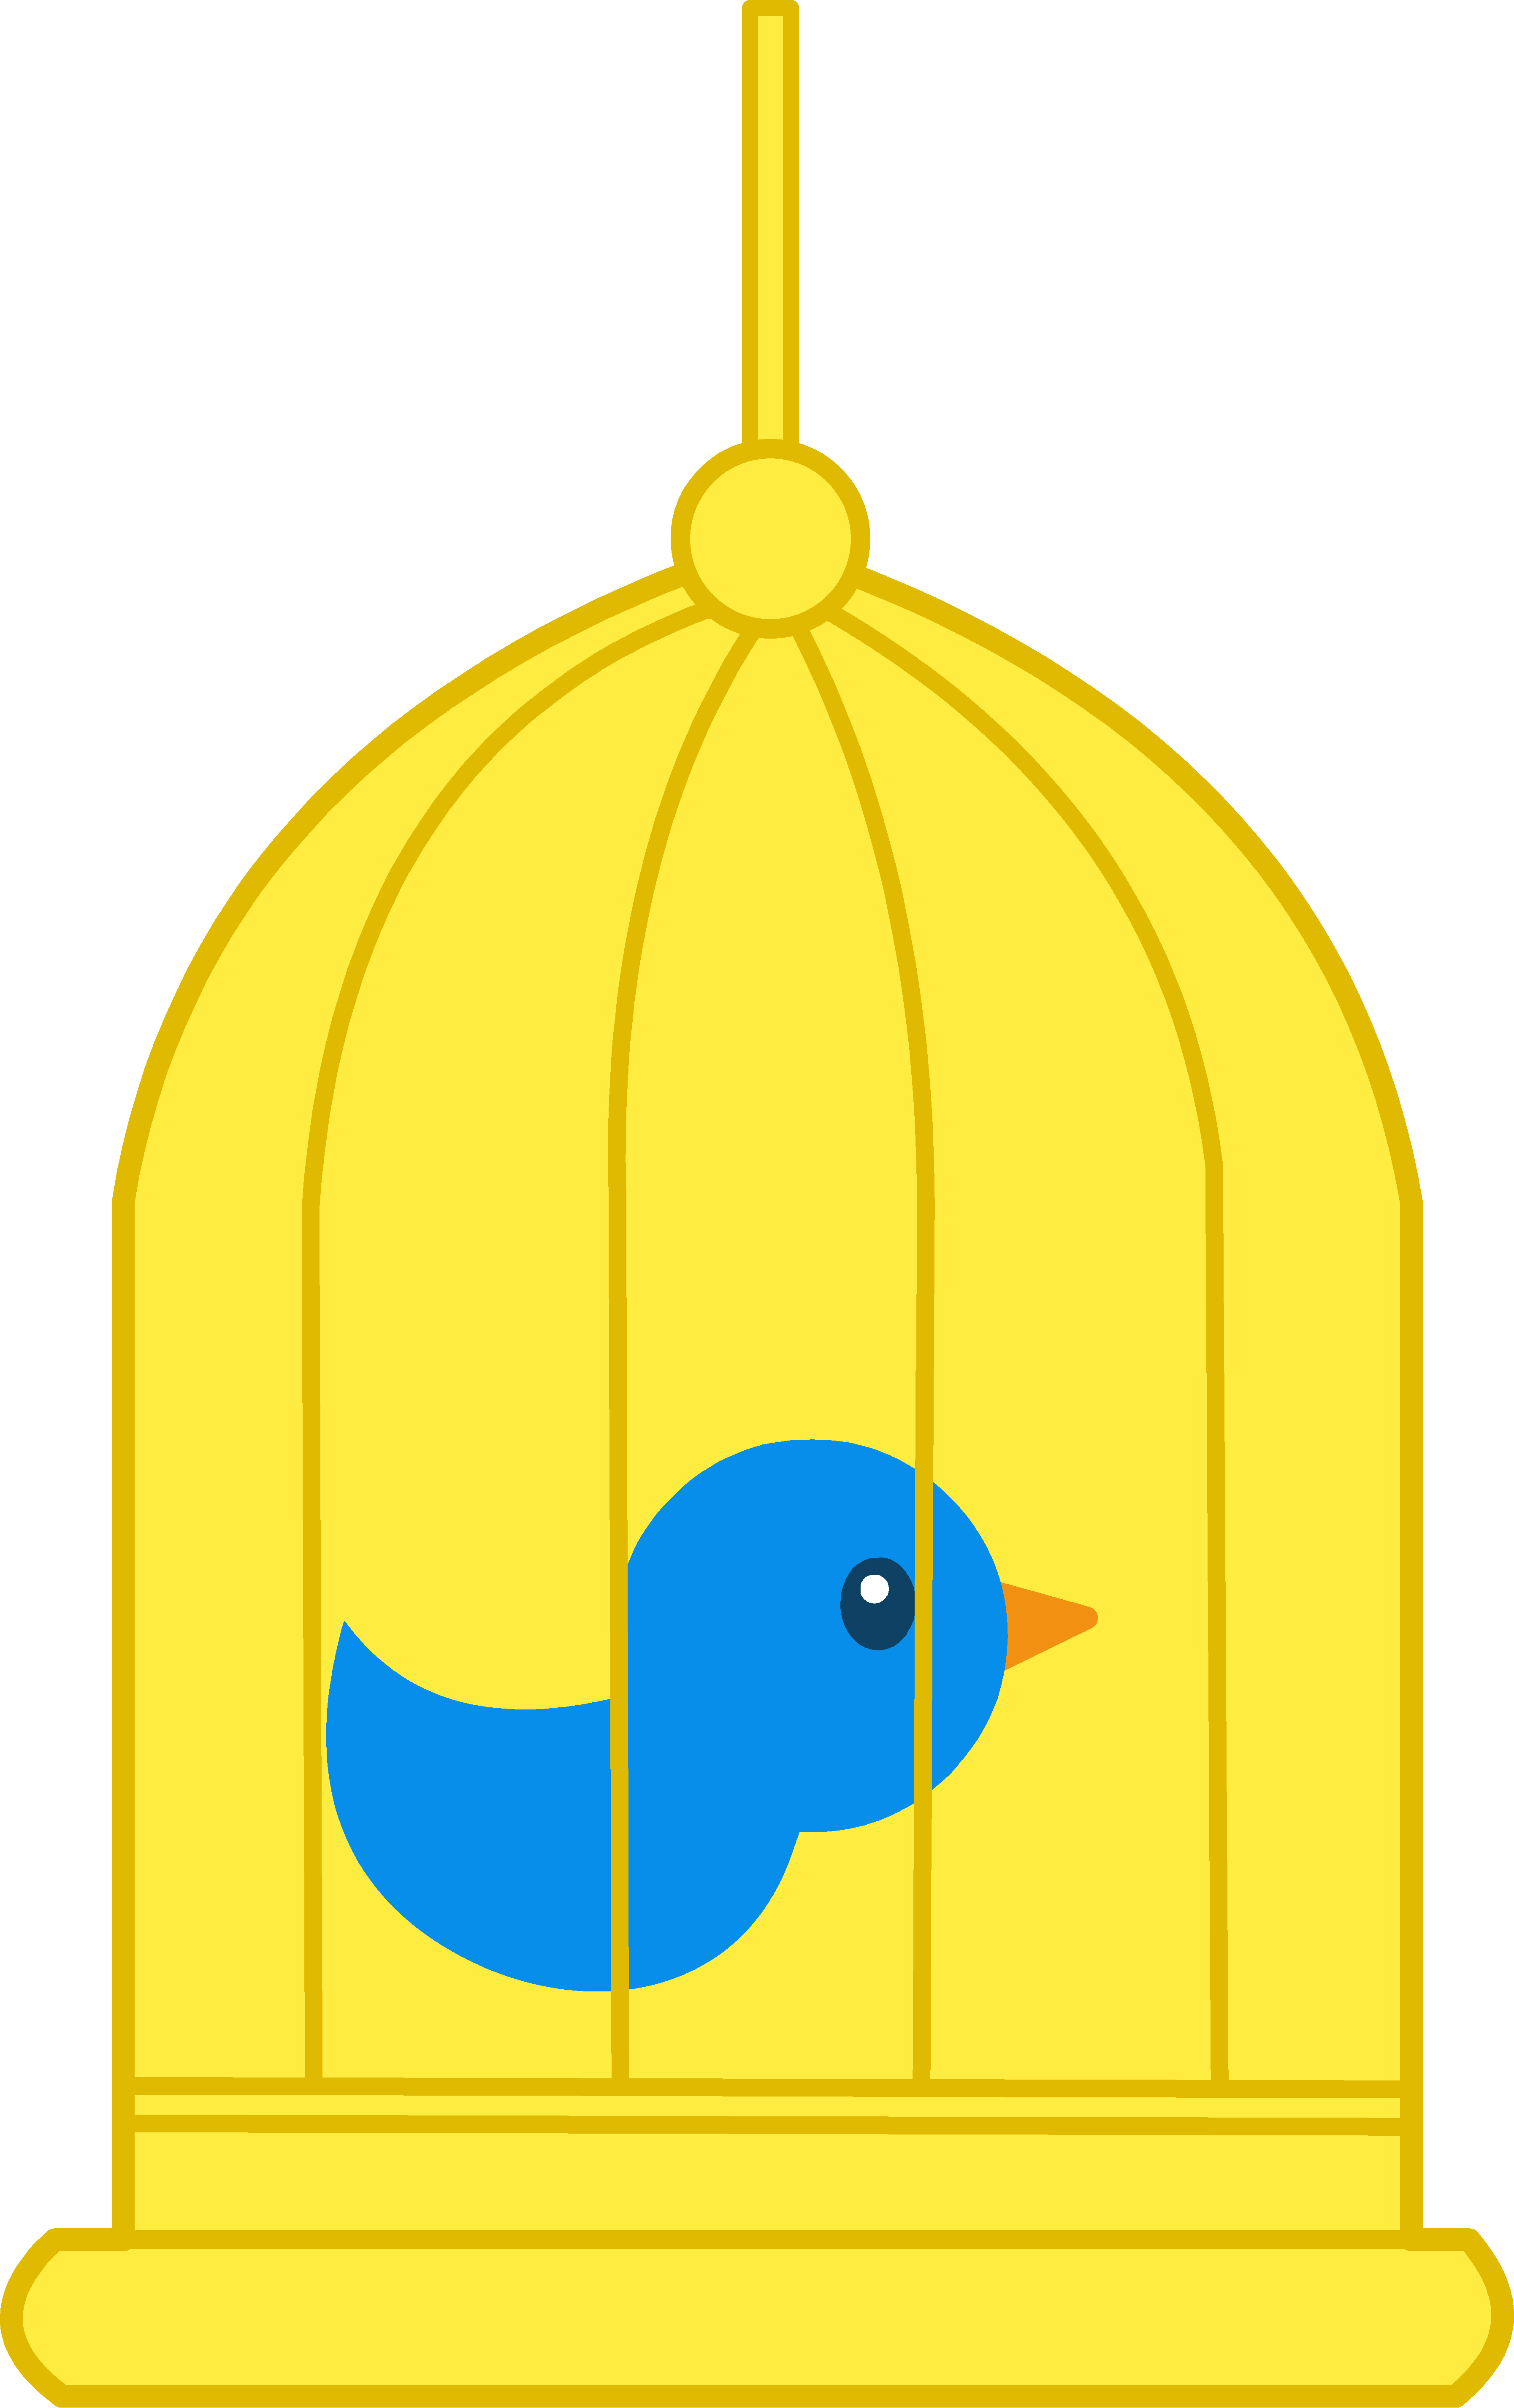 Pet bird cage . Spaceship clipart yellow